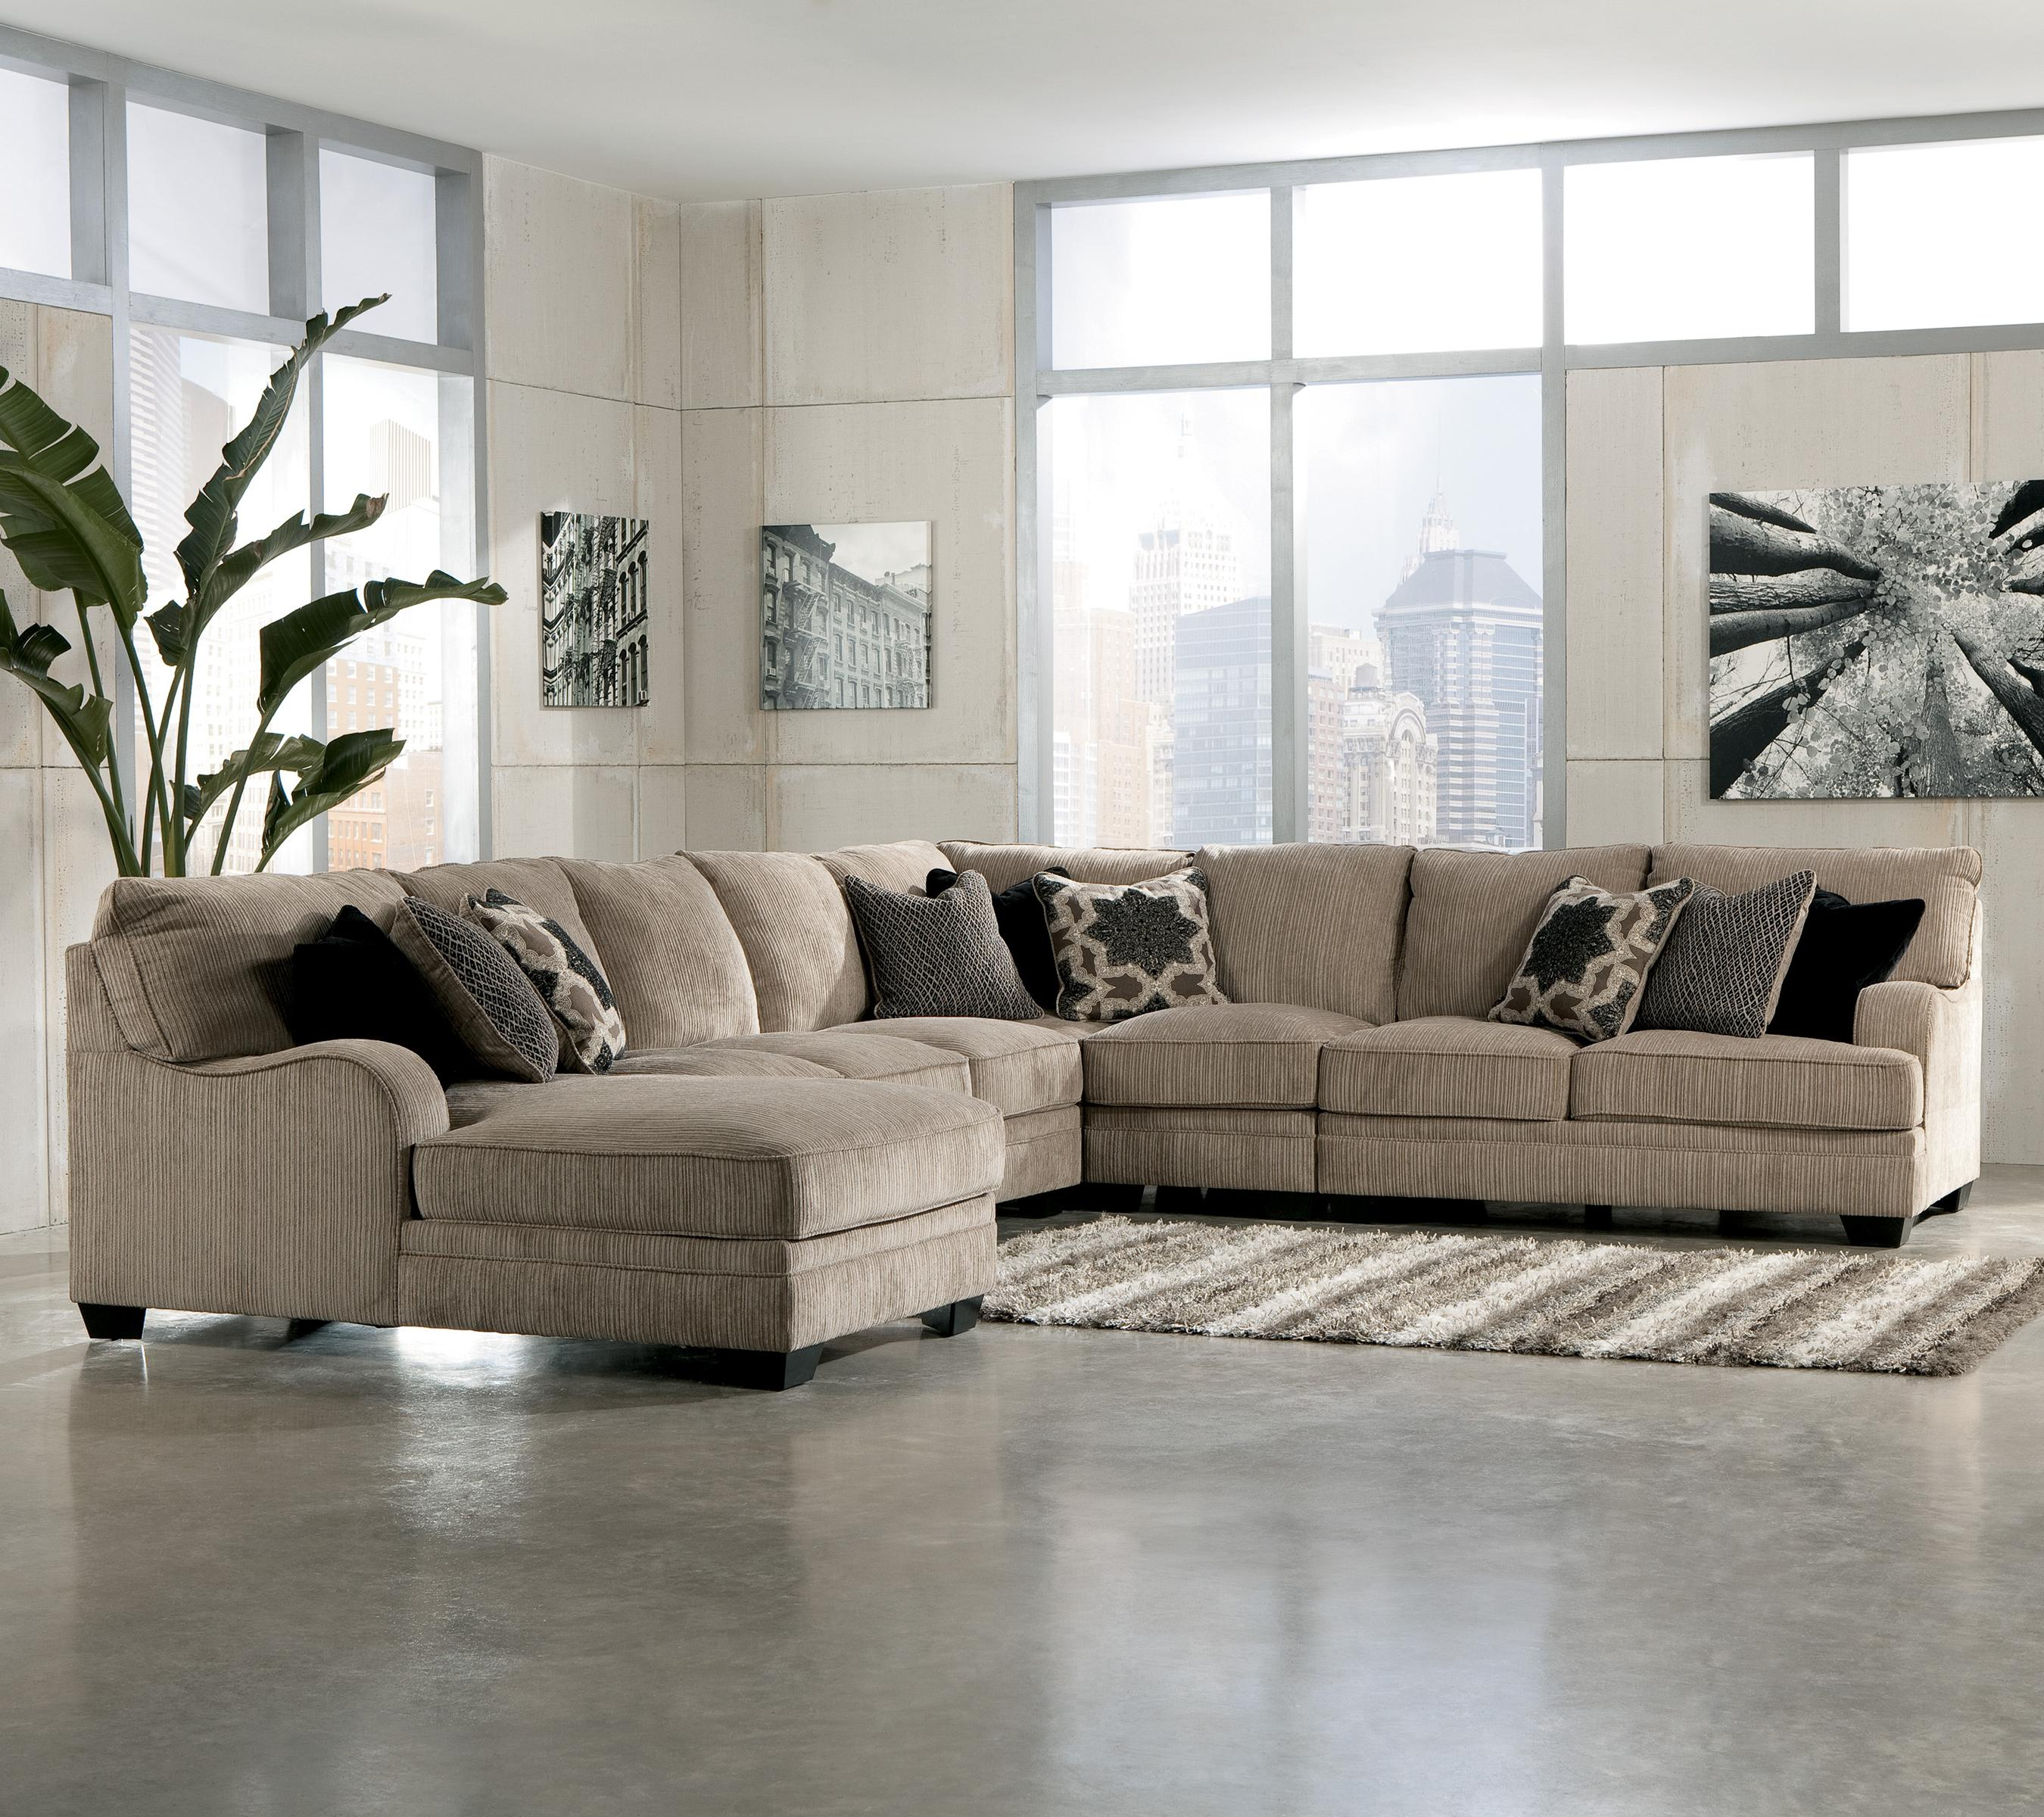 signature design by ashley katisha platinum 5 piece sectional sofa rh catalog findyourfurniture com Ashley Furniture Leather Sectional Couch Ashley Reclining Sectional with Chaise